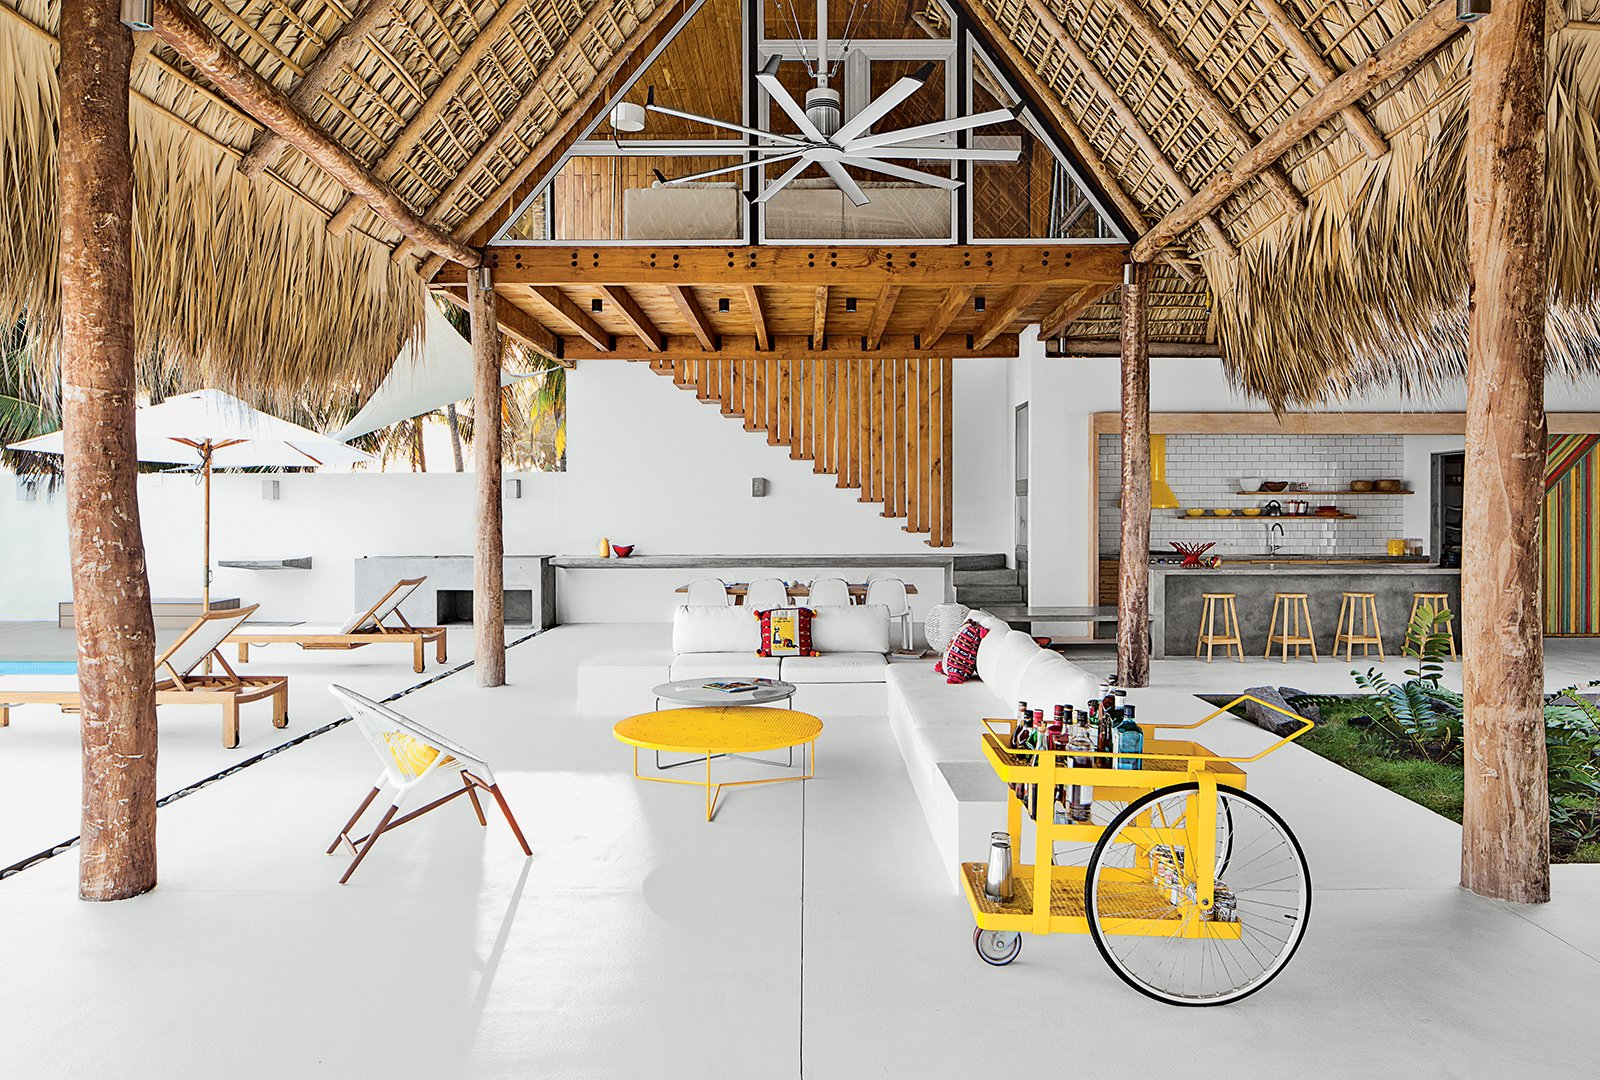 The living-dining area of a beach house designed by El Salvador firm Cincopatasalgato features a custom bar cart by local designers Claudia & Harry Washington, a built-in sofa, and an Ikono chair and Circa low tables by The Carrot Concept.  Photo 2 of 6 in Bursts of Yellow and Indoor Gardens Are Just Two Reasons to Love This Home